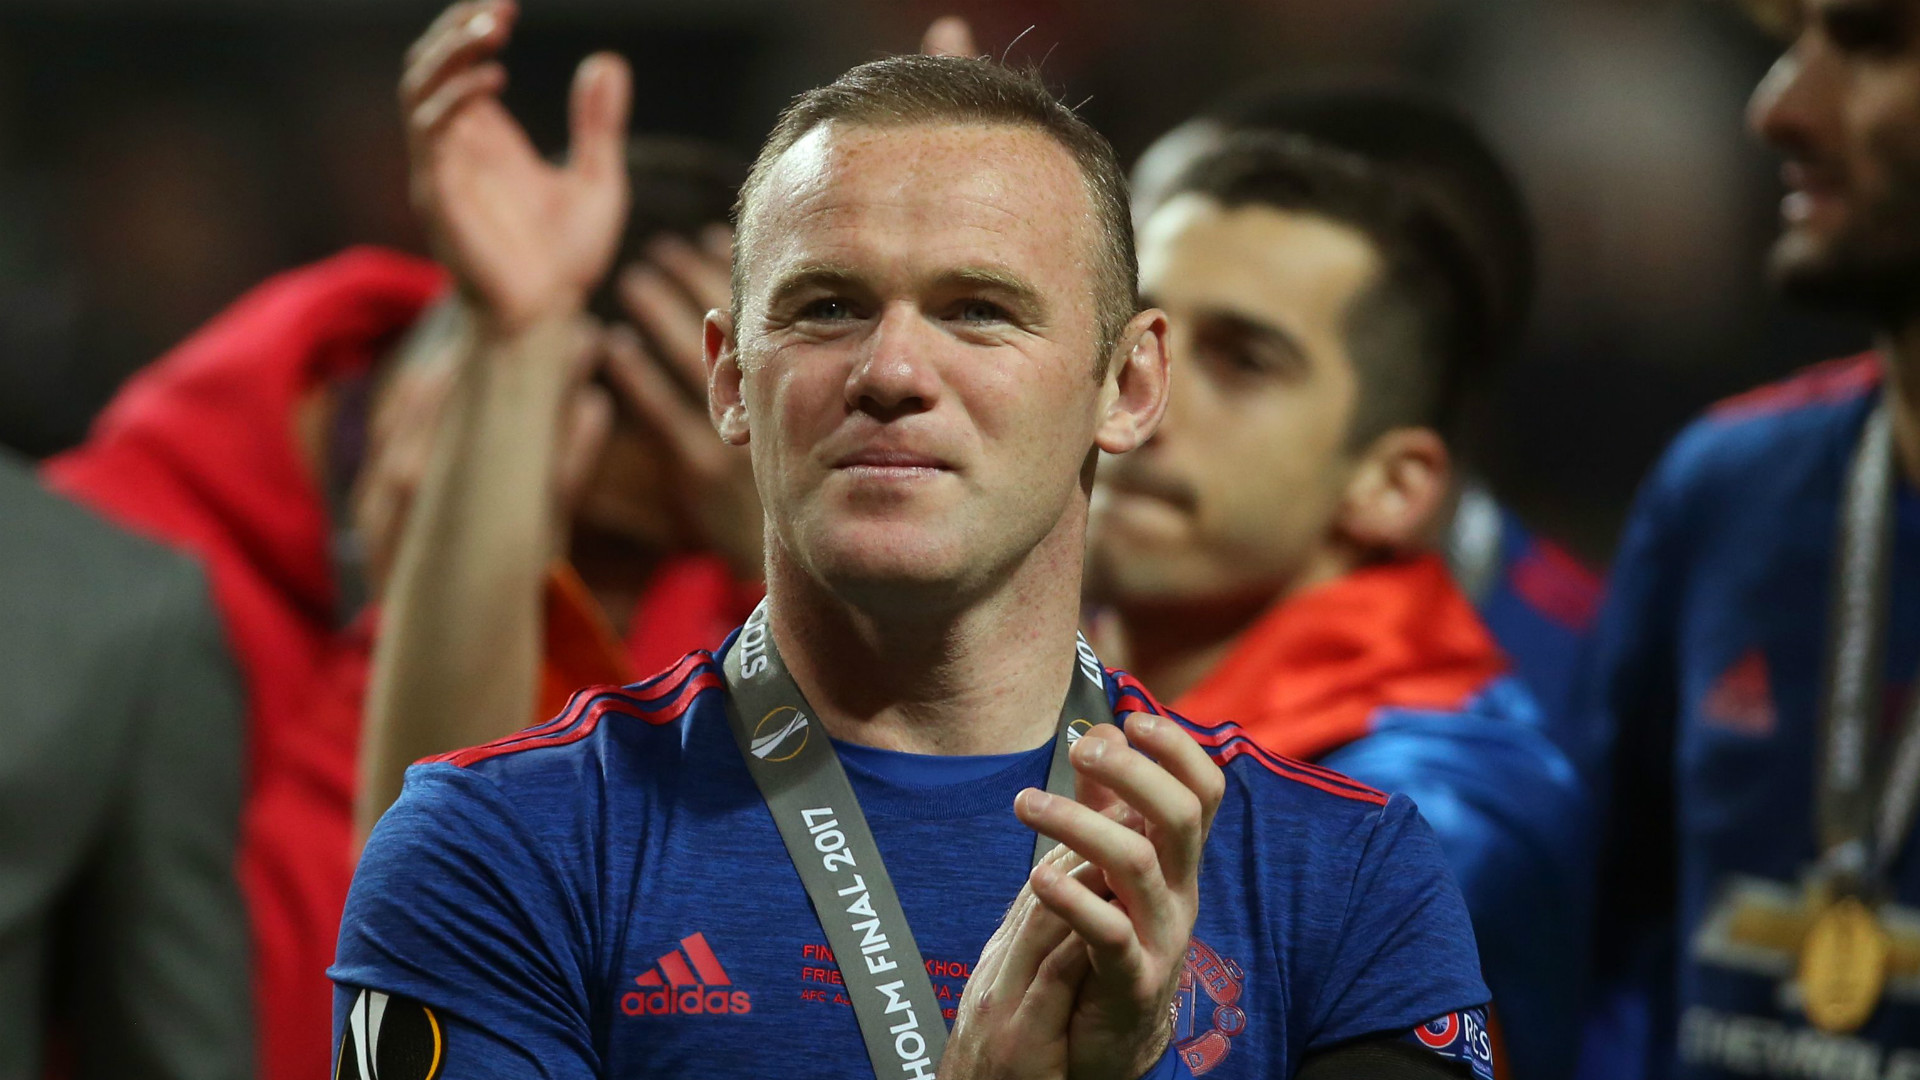 Wayne Rooney to captain England in farewell friendly match against the USA